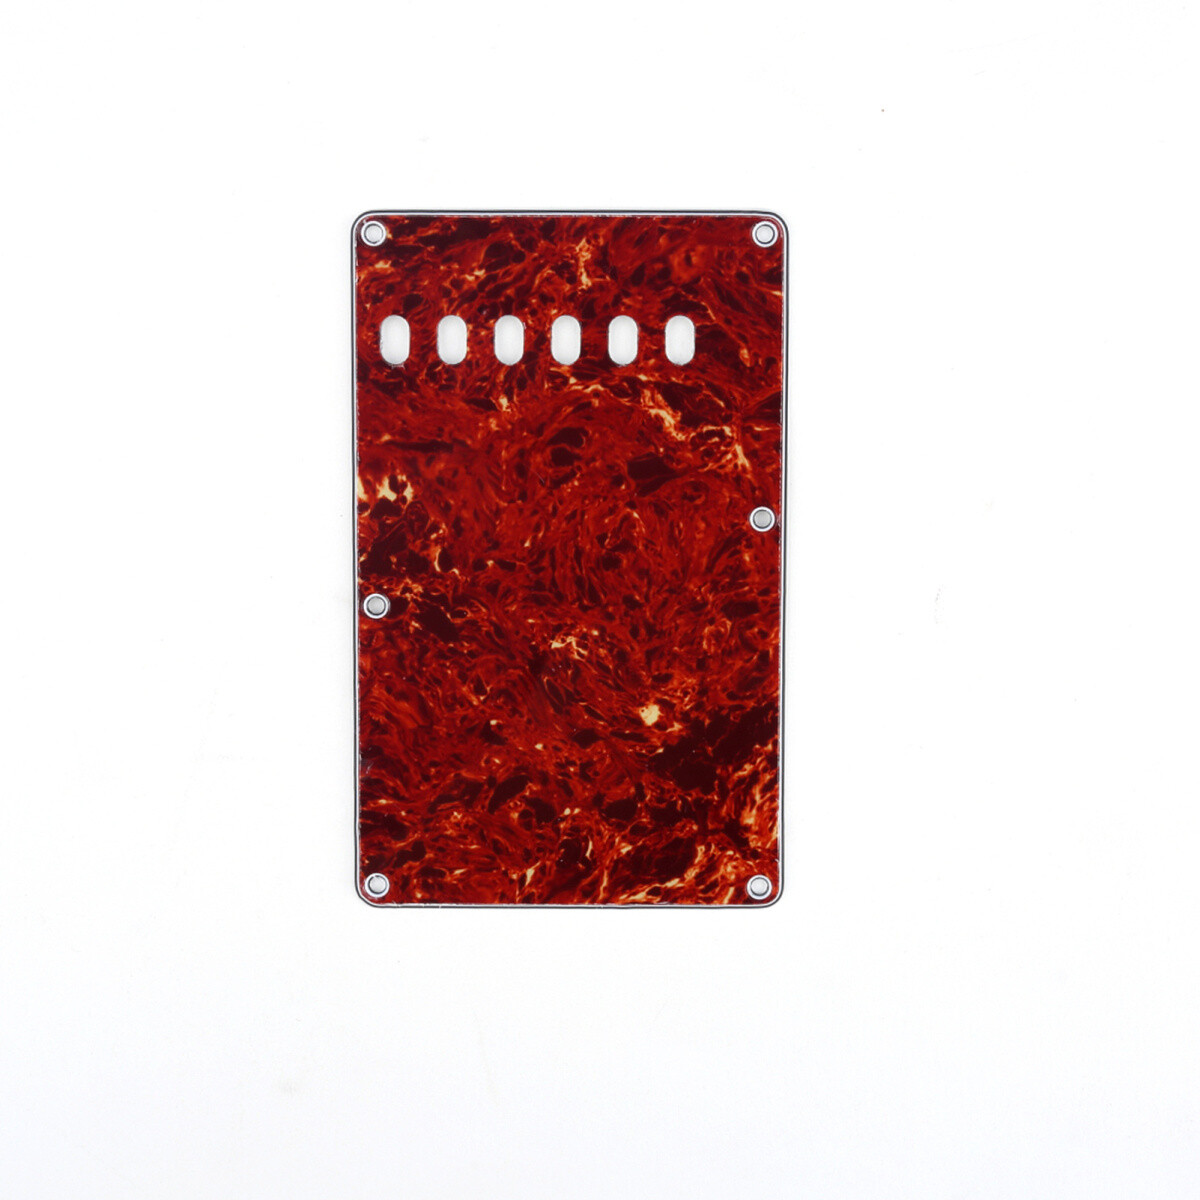 Red Tortoise Vintage Style Back Plate Tremolo Cover 3 ply - US/Mexican Fender®Strat® Fit